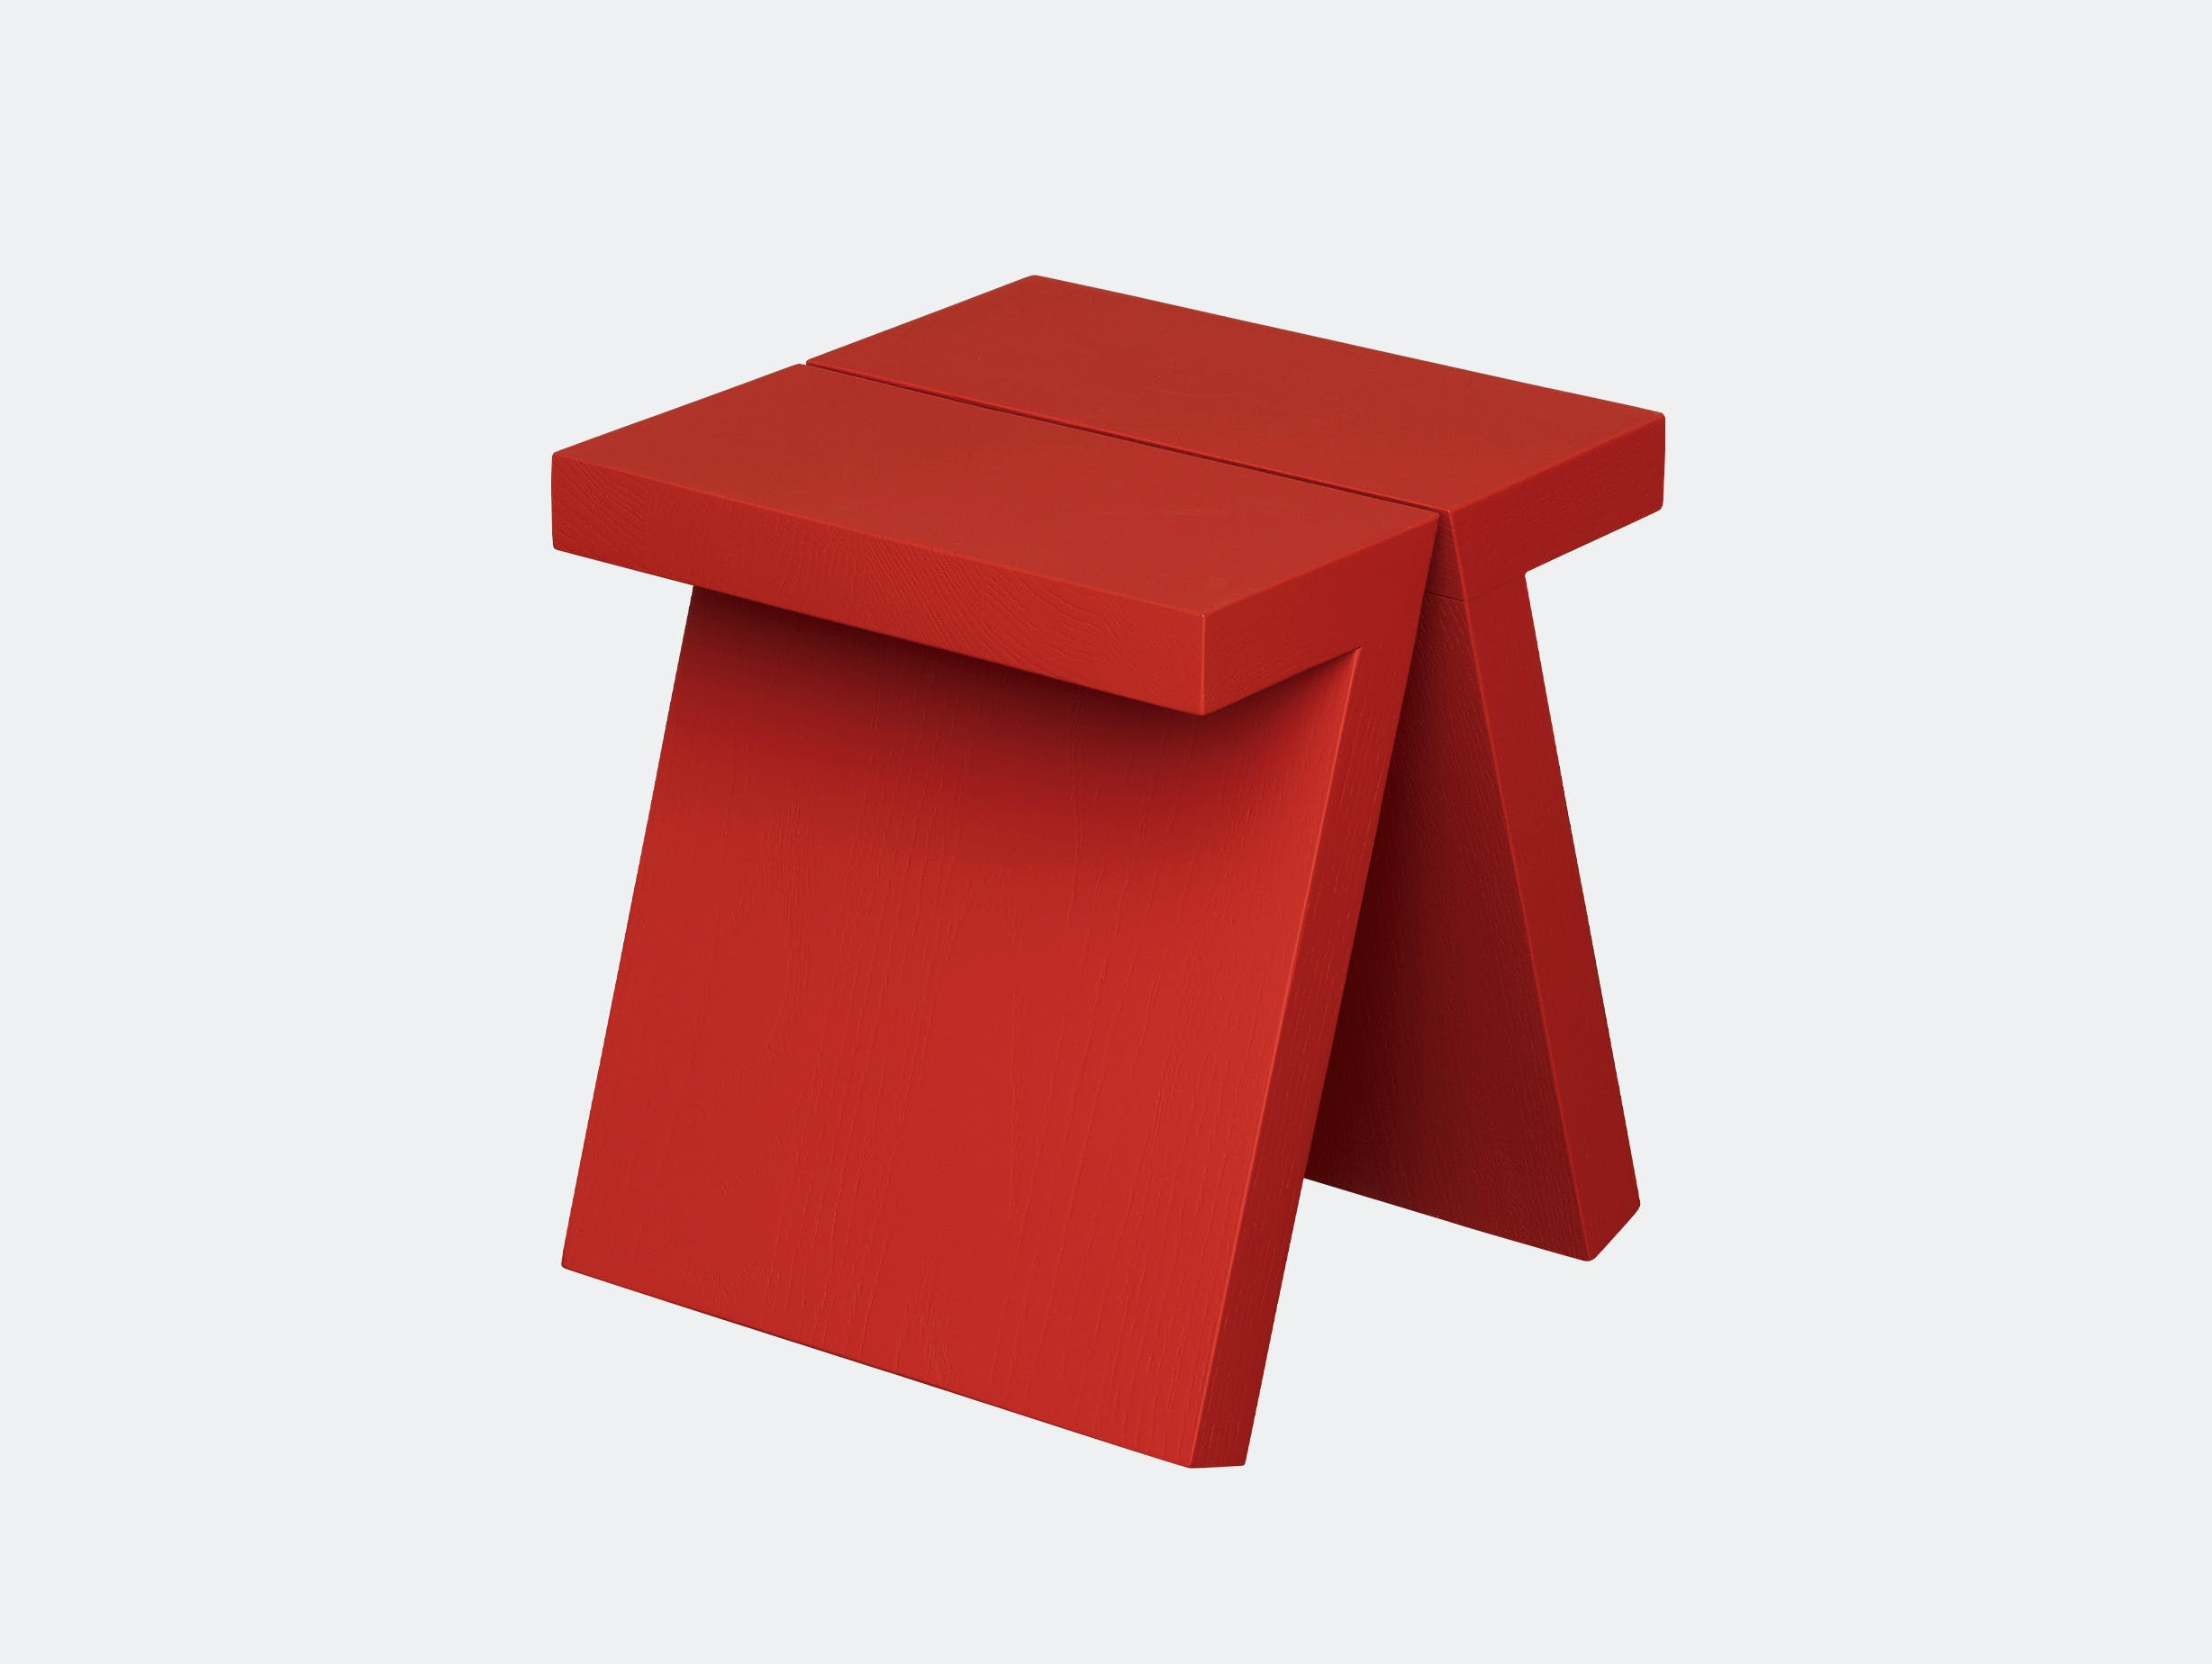 Fogia supersolid object 1 red stool 2